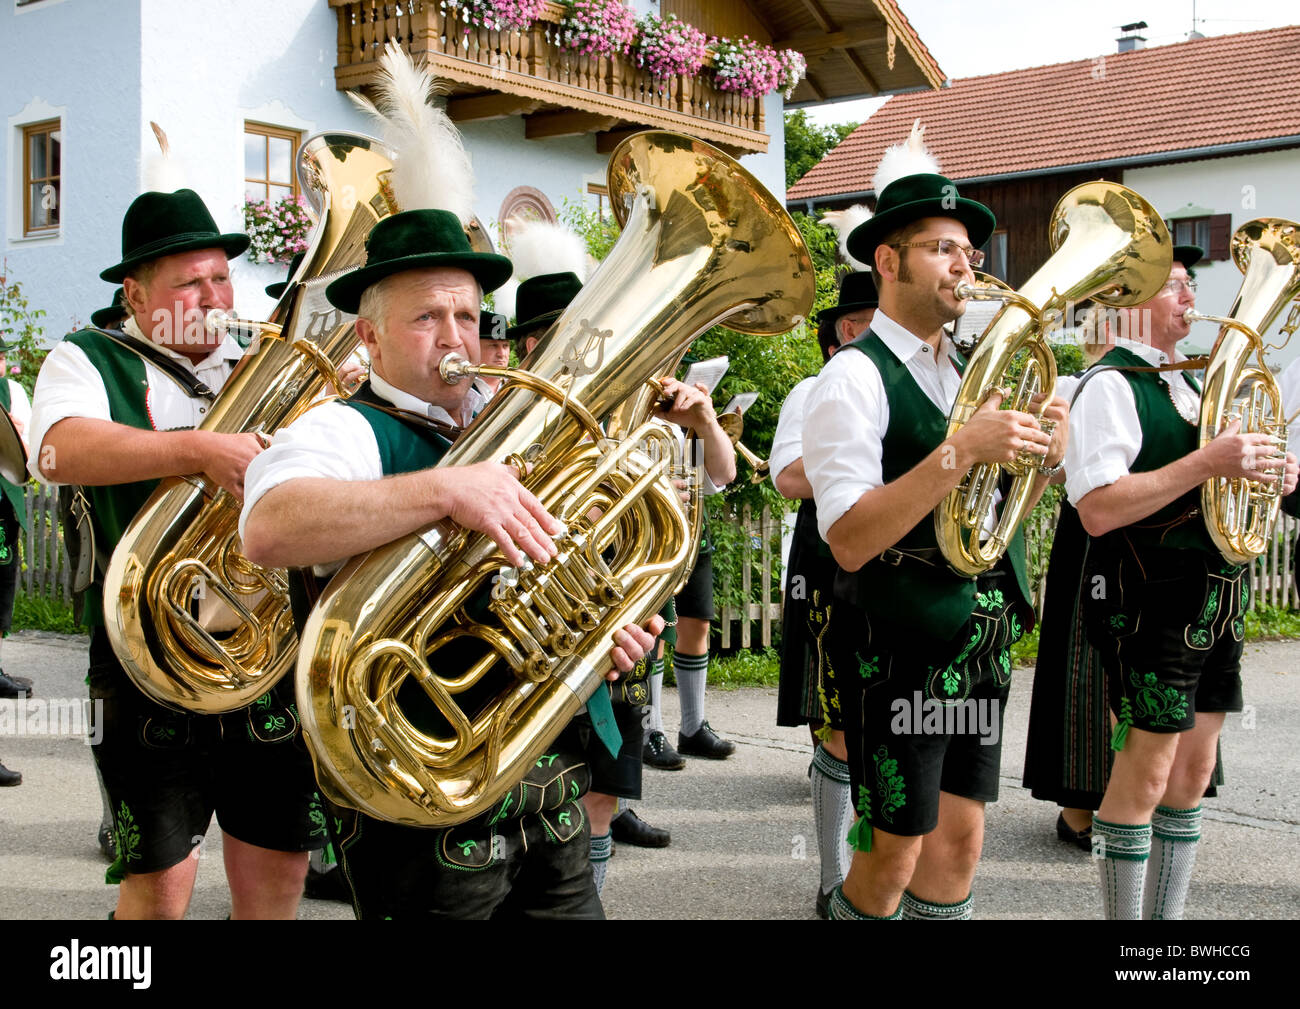 Bavarian march music at a traditional festival - Stock Image